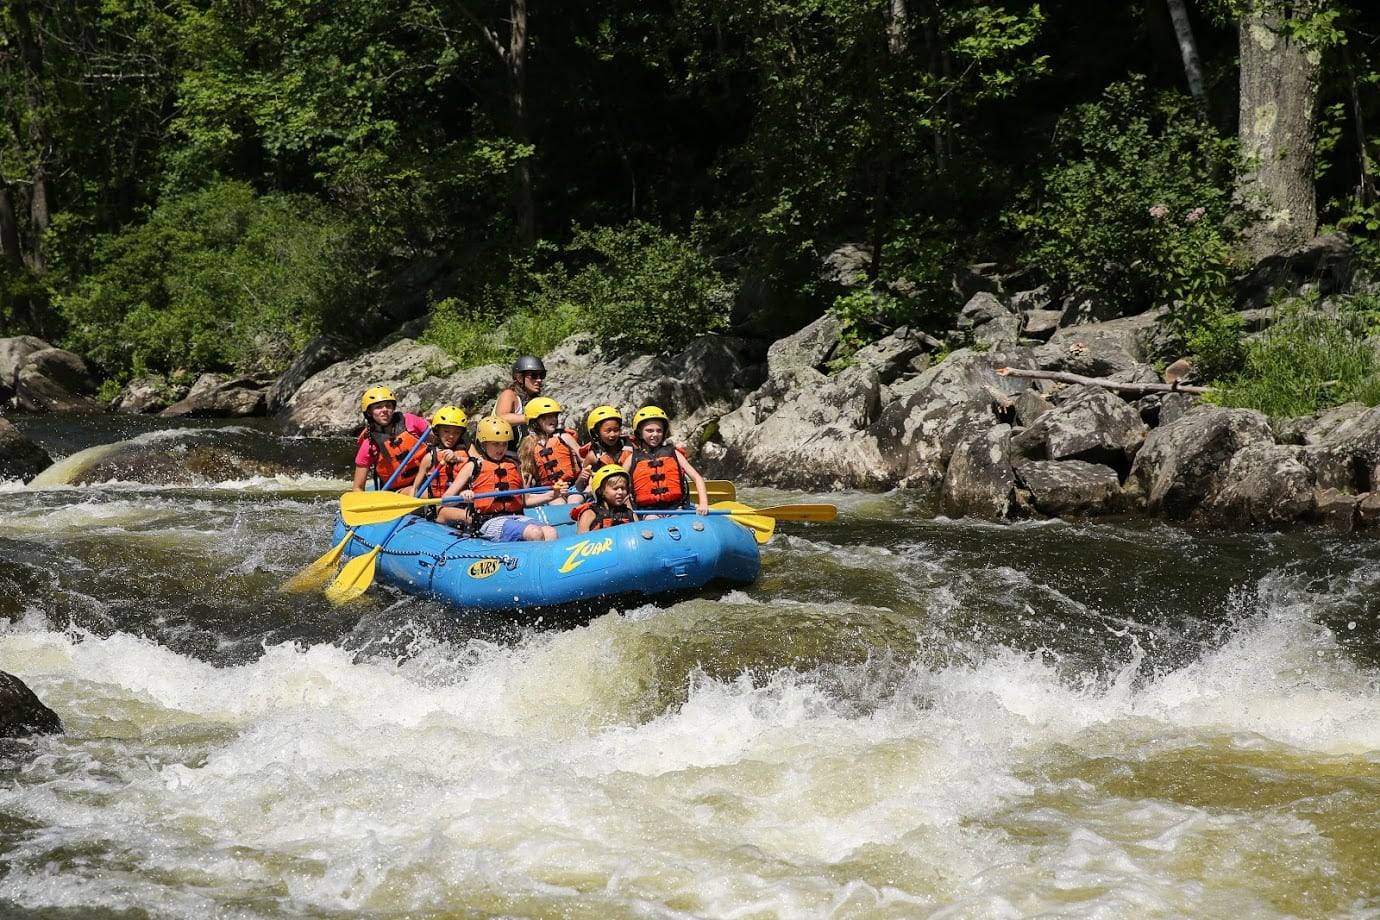 A rafting adventure on the Deerfield river